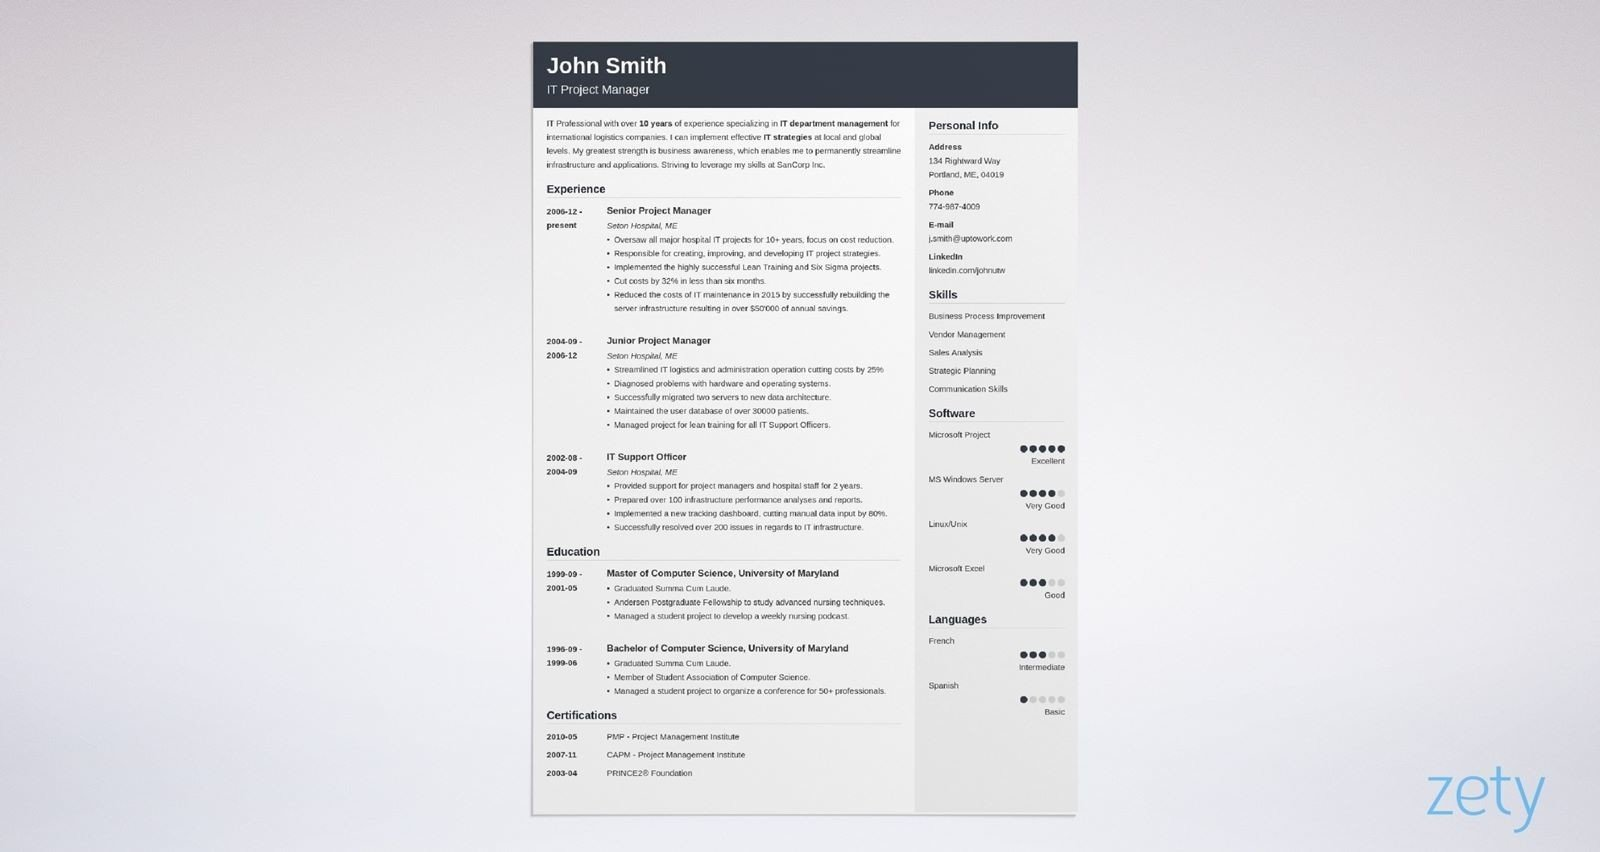 best resume templates for top picks to new business operations manager snf nurse job Resume Best New Resume Templates